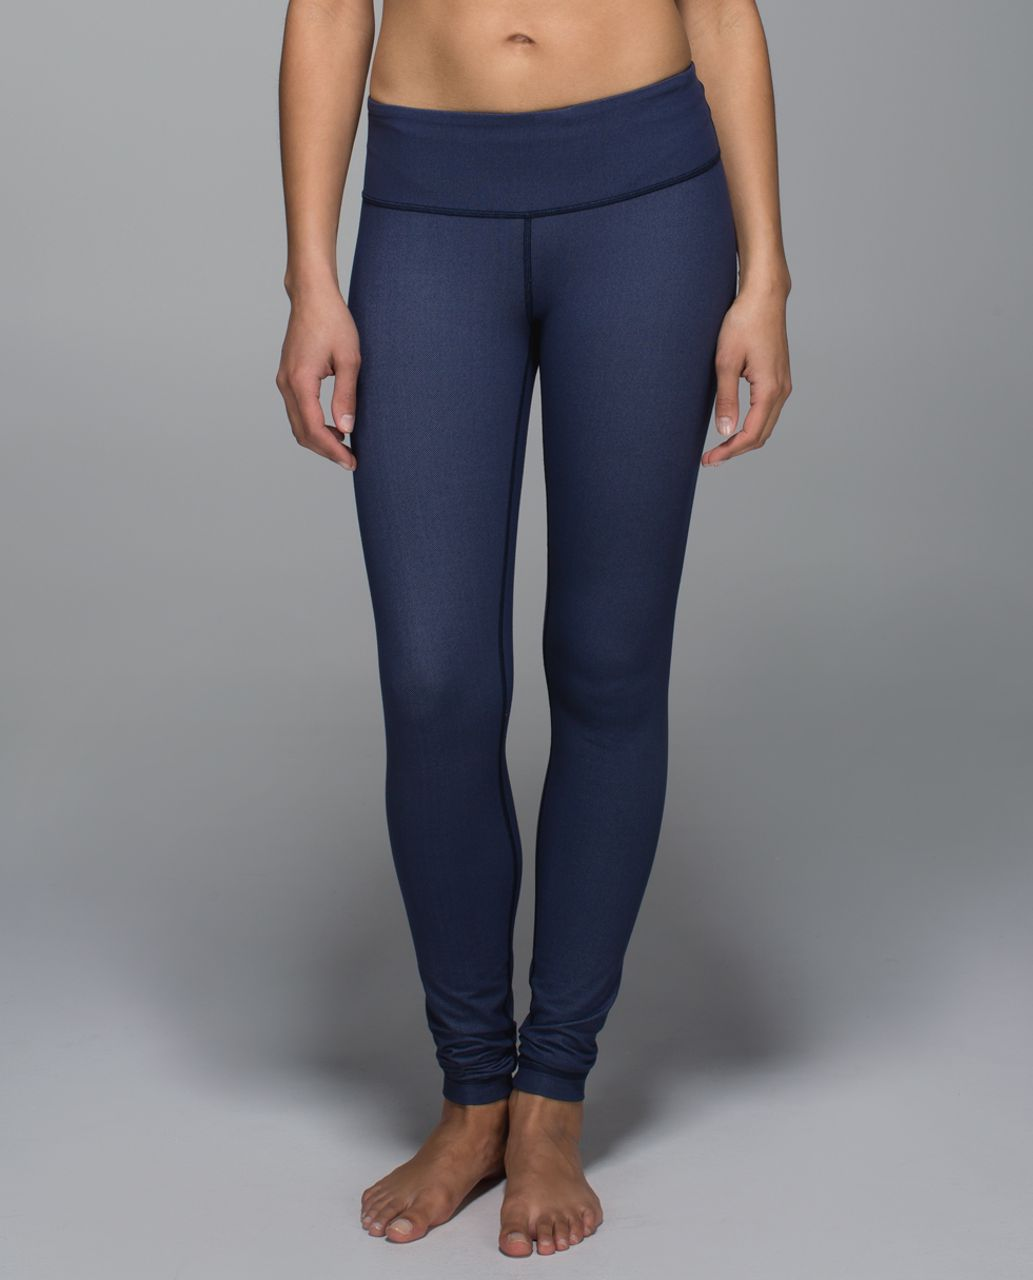 Lululemon Wunder Under Pant *Full-On Luon - Deep Navy